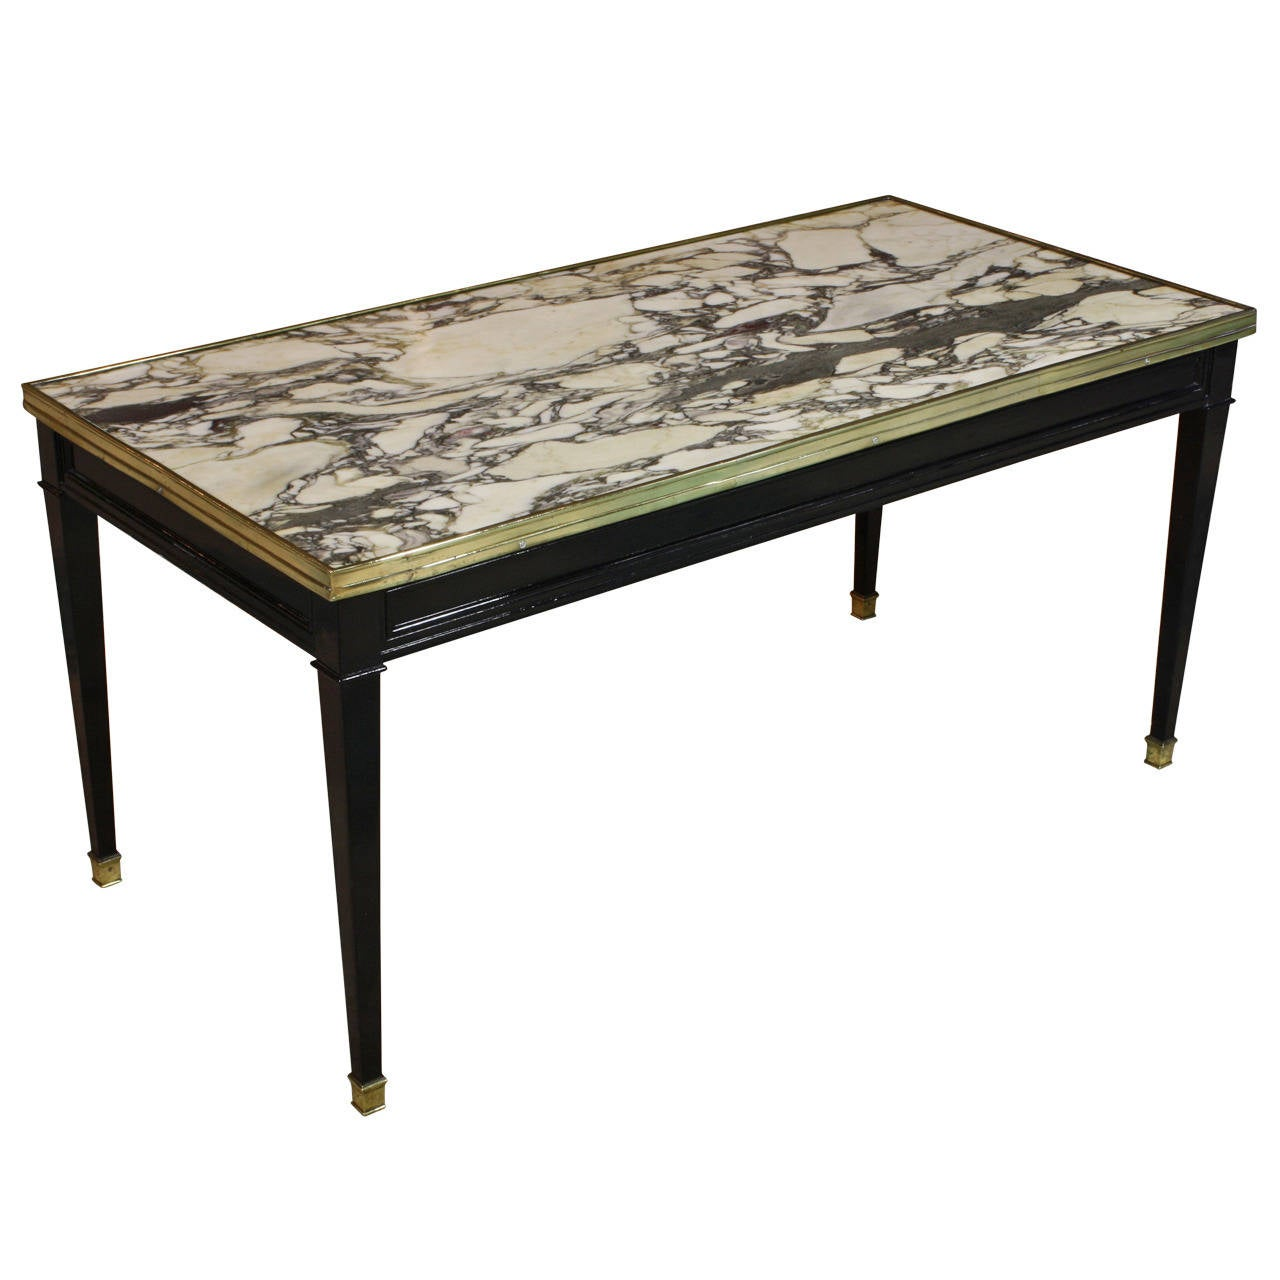 Jansen black lacquered marble top cocktail table at 1stdibs Coffee tables with marble tops